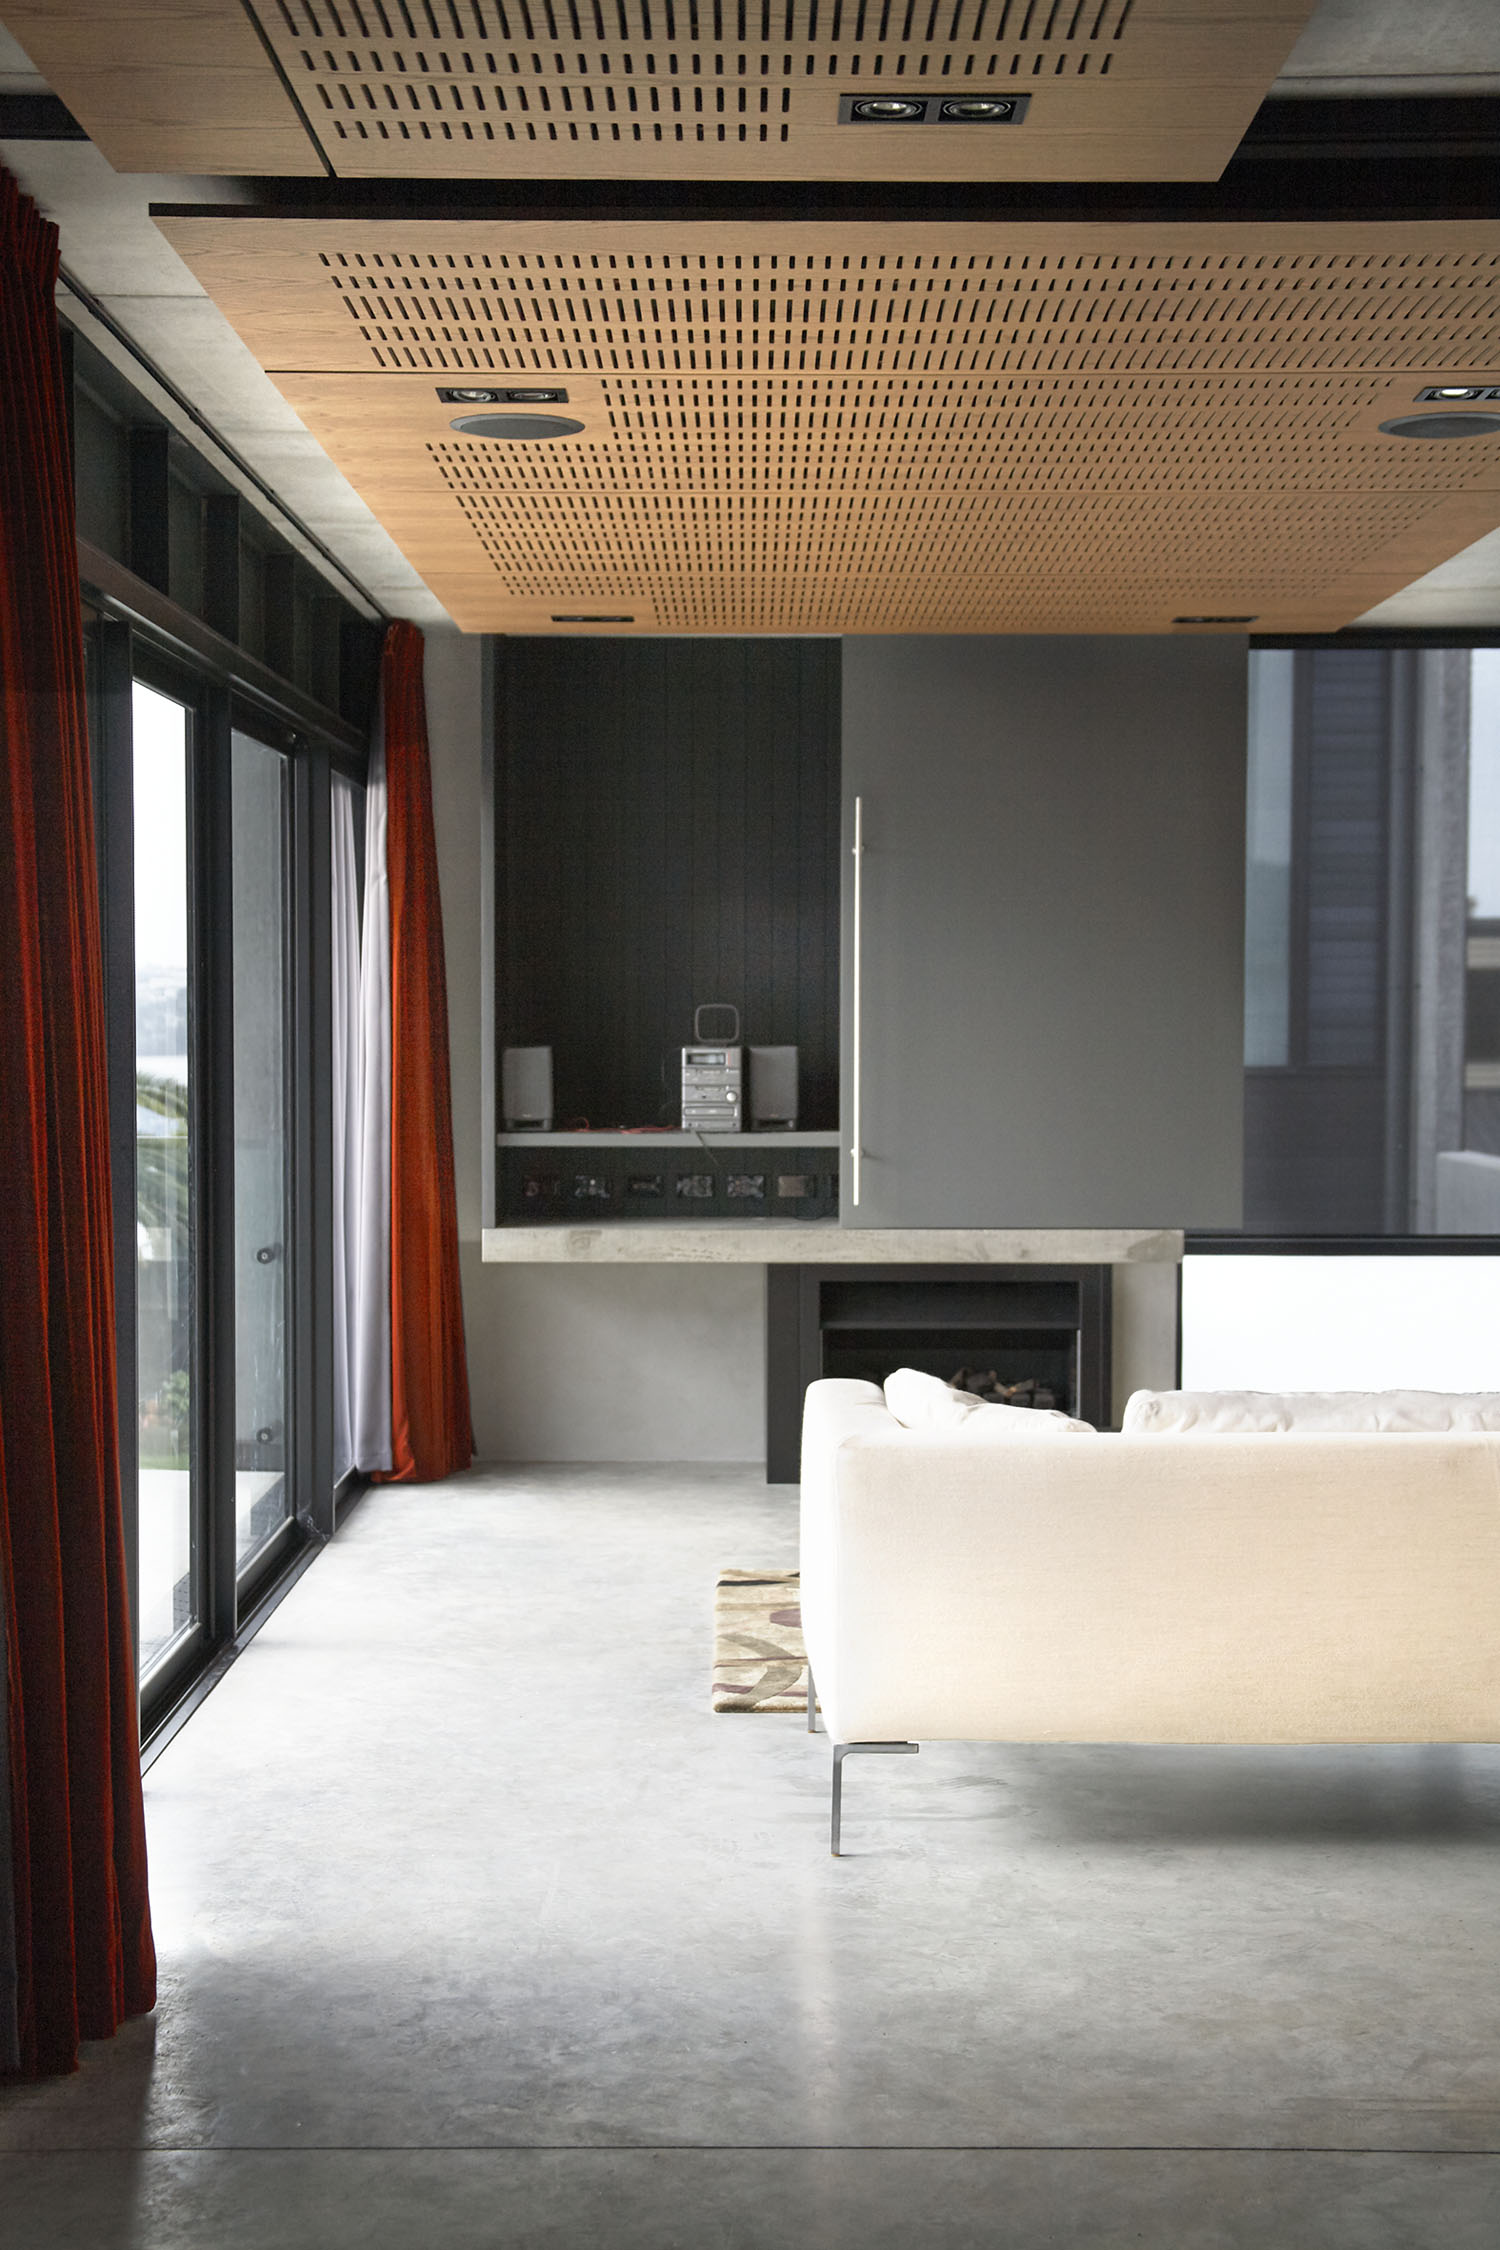 Gerrad Hall townhouse acoustic timber ceiling softens concrete reverberation